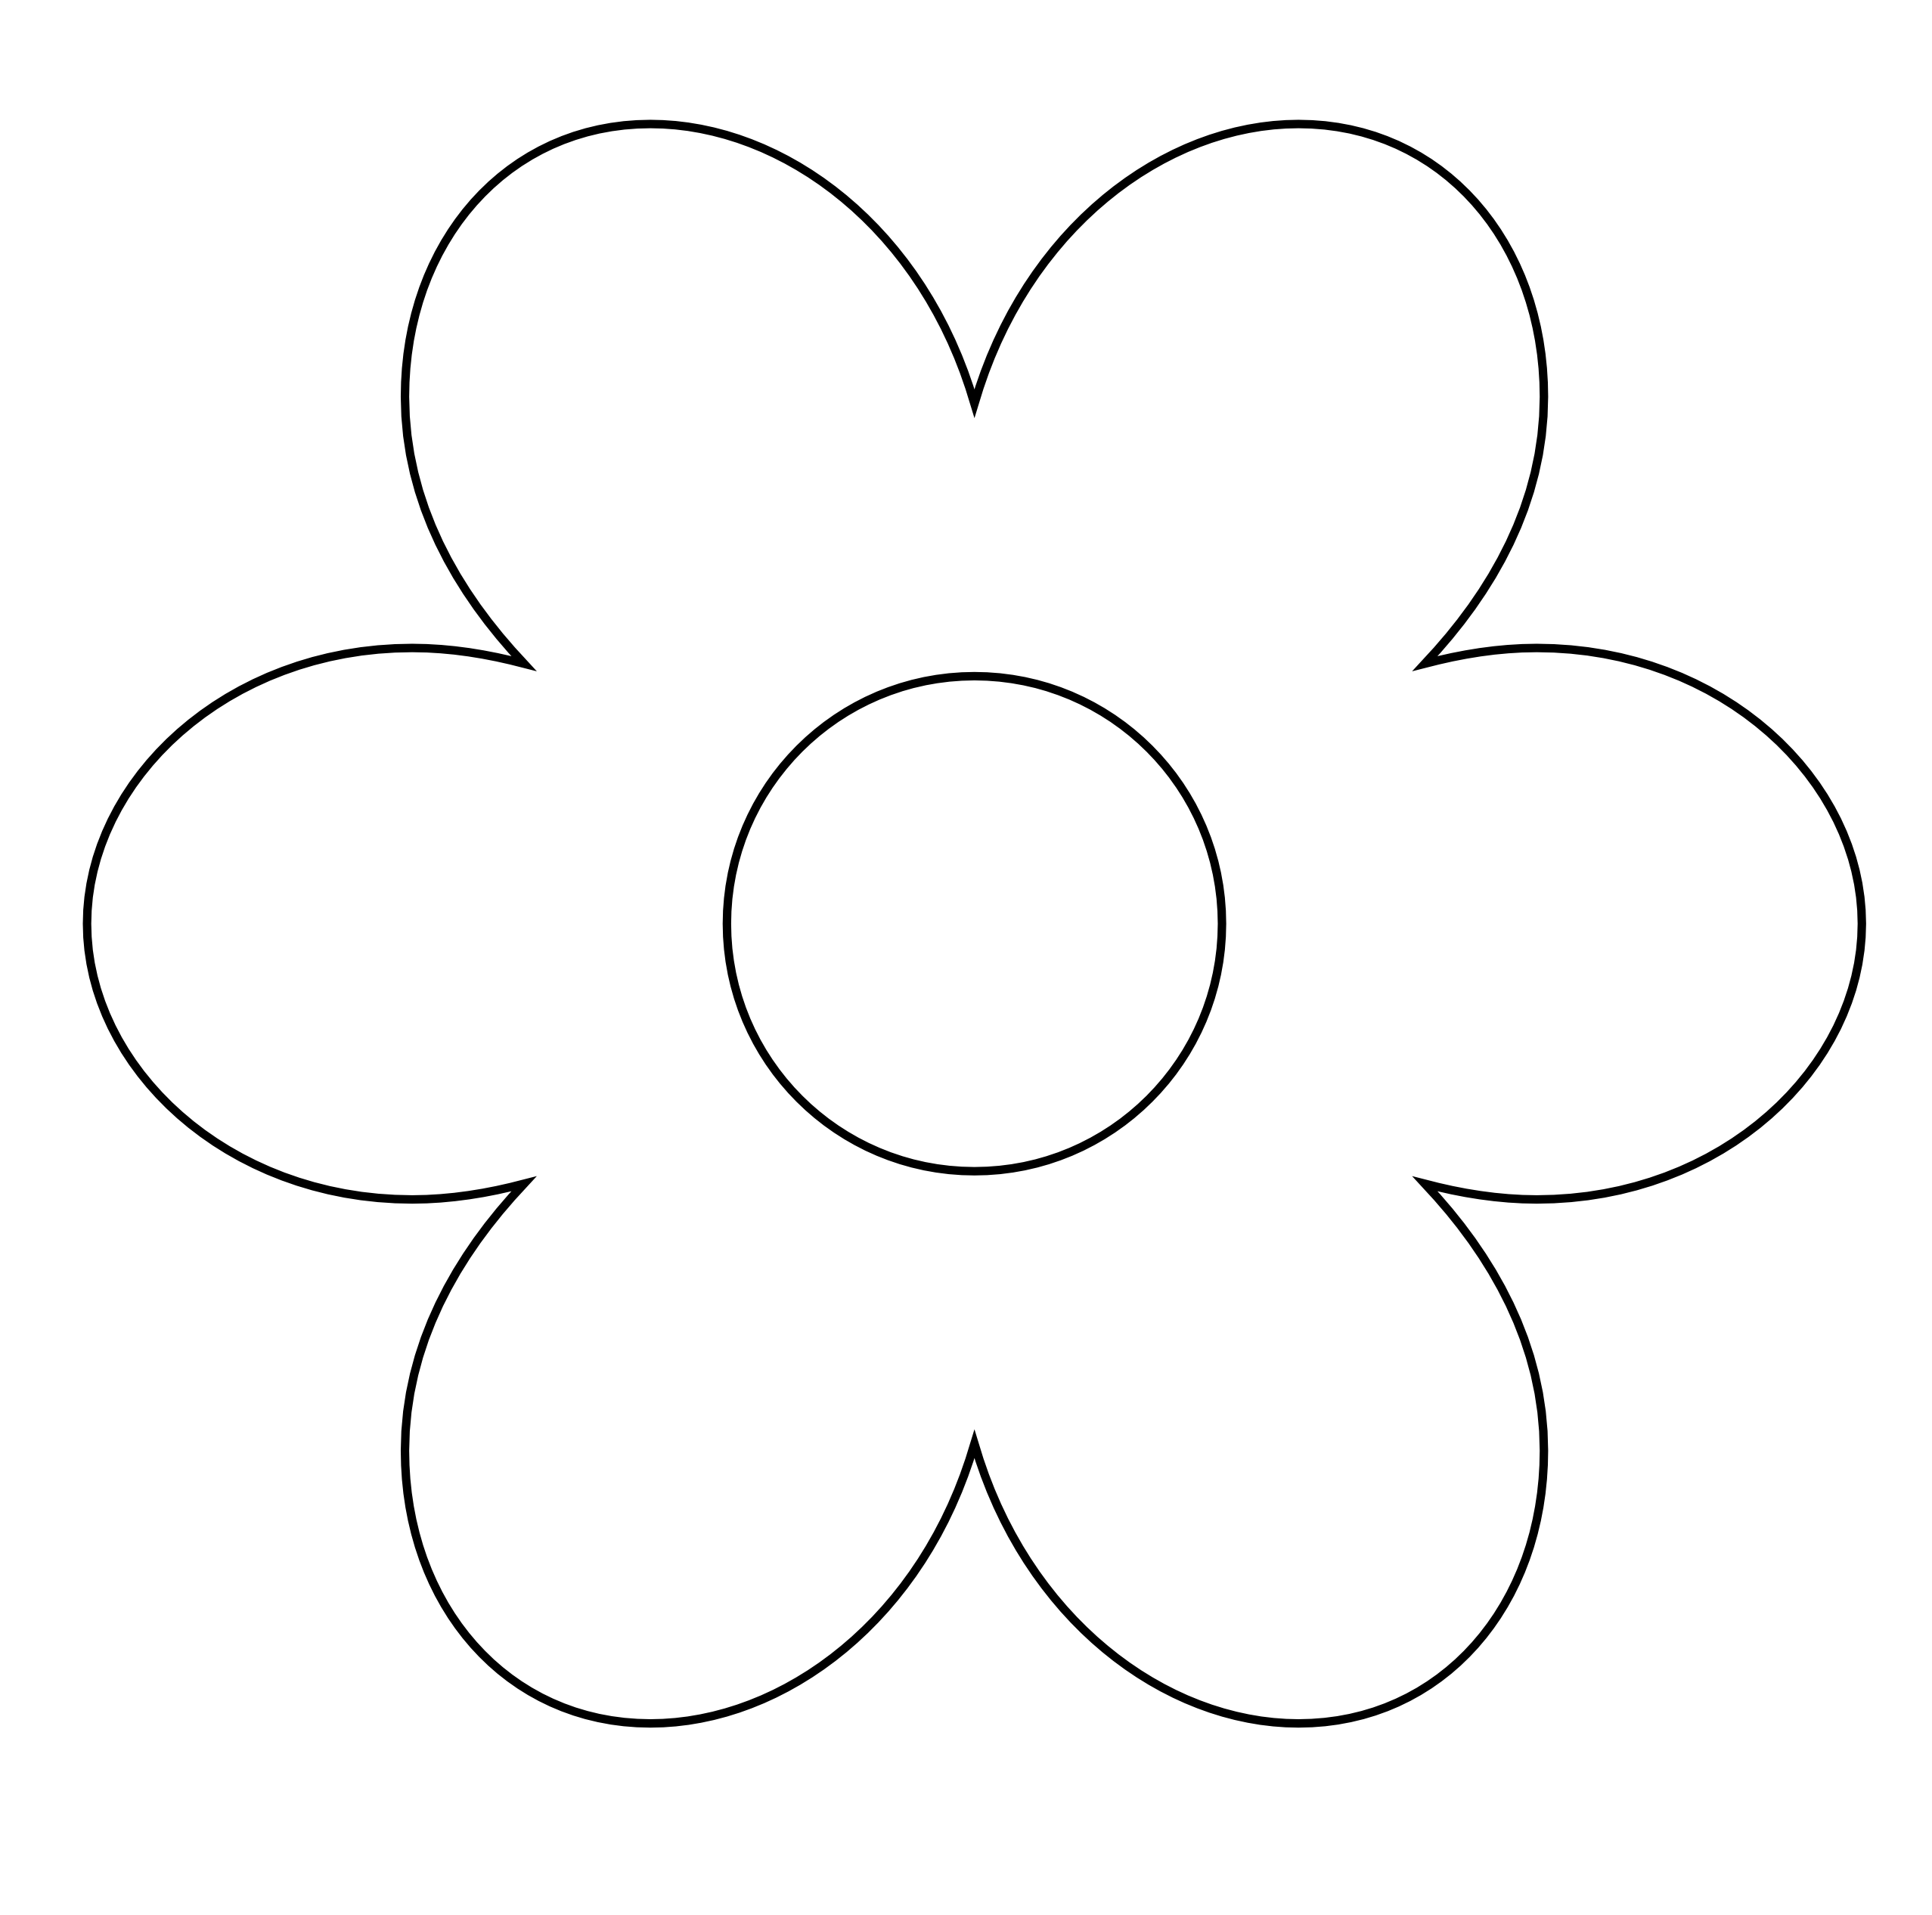 Simple flower png. Black and white transparent